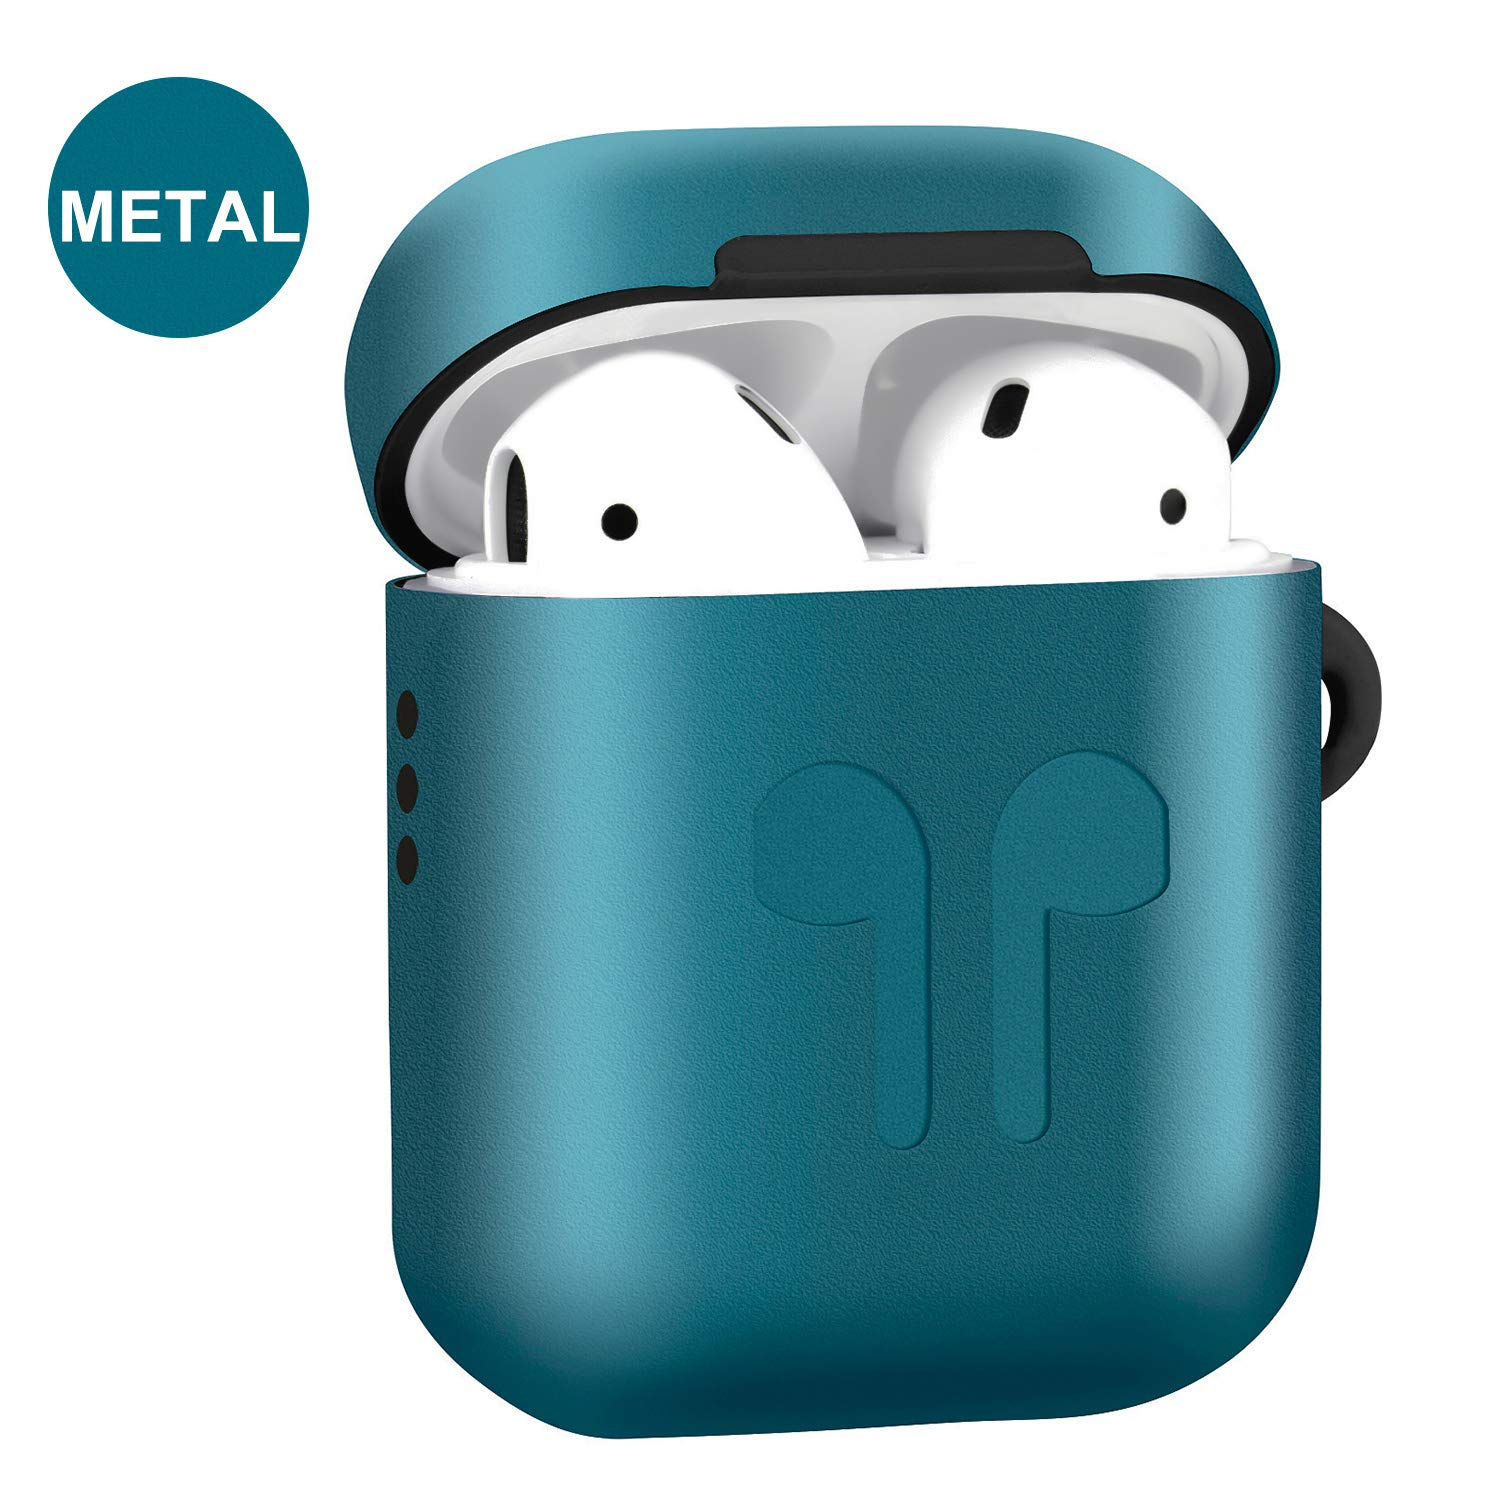 Metal Airpods Case Full Protective Skin Cover Compatible with Apple Airpods 2&1 Charging case